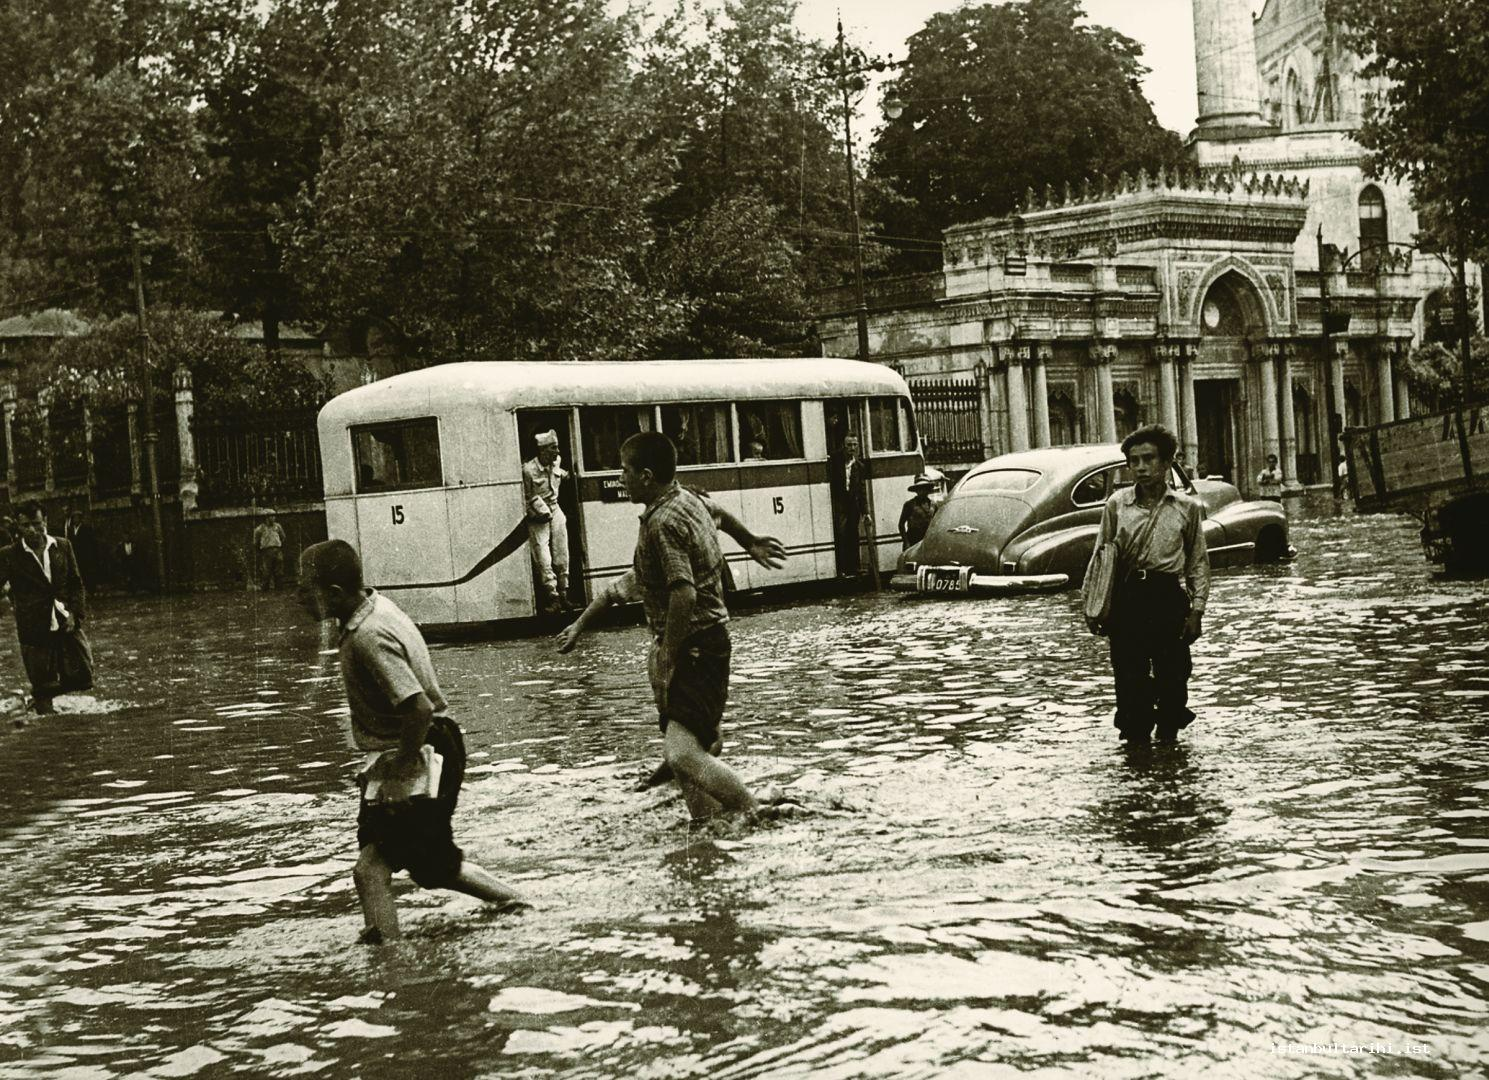 4- In front of Pertevniyal Valide Sultan Mosque in Aksaray and a public bus under water in 1950s (Istanbul Metropolitan Municipality, Kültür A.Ş.)